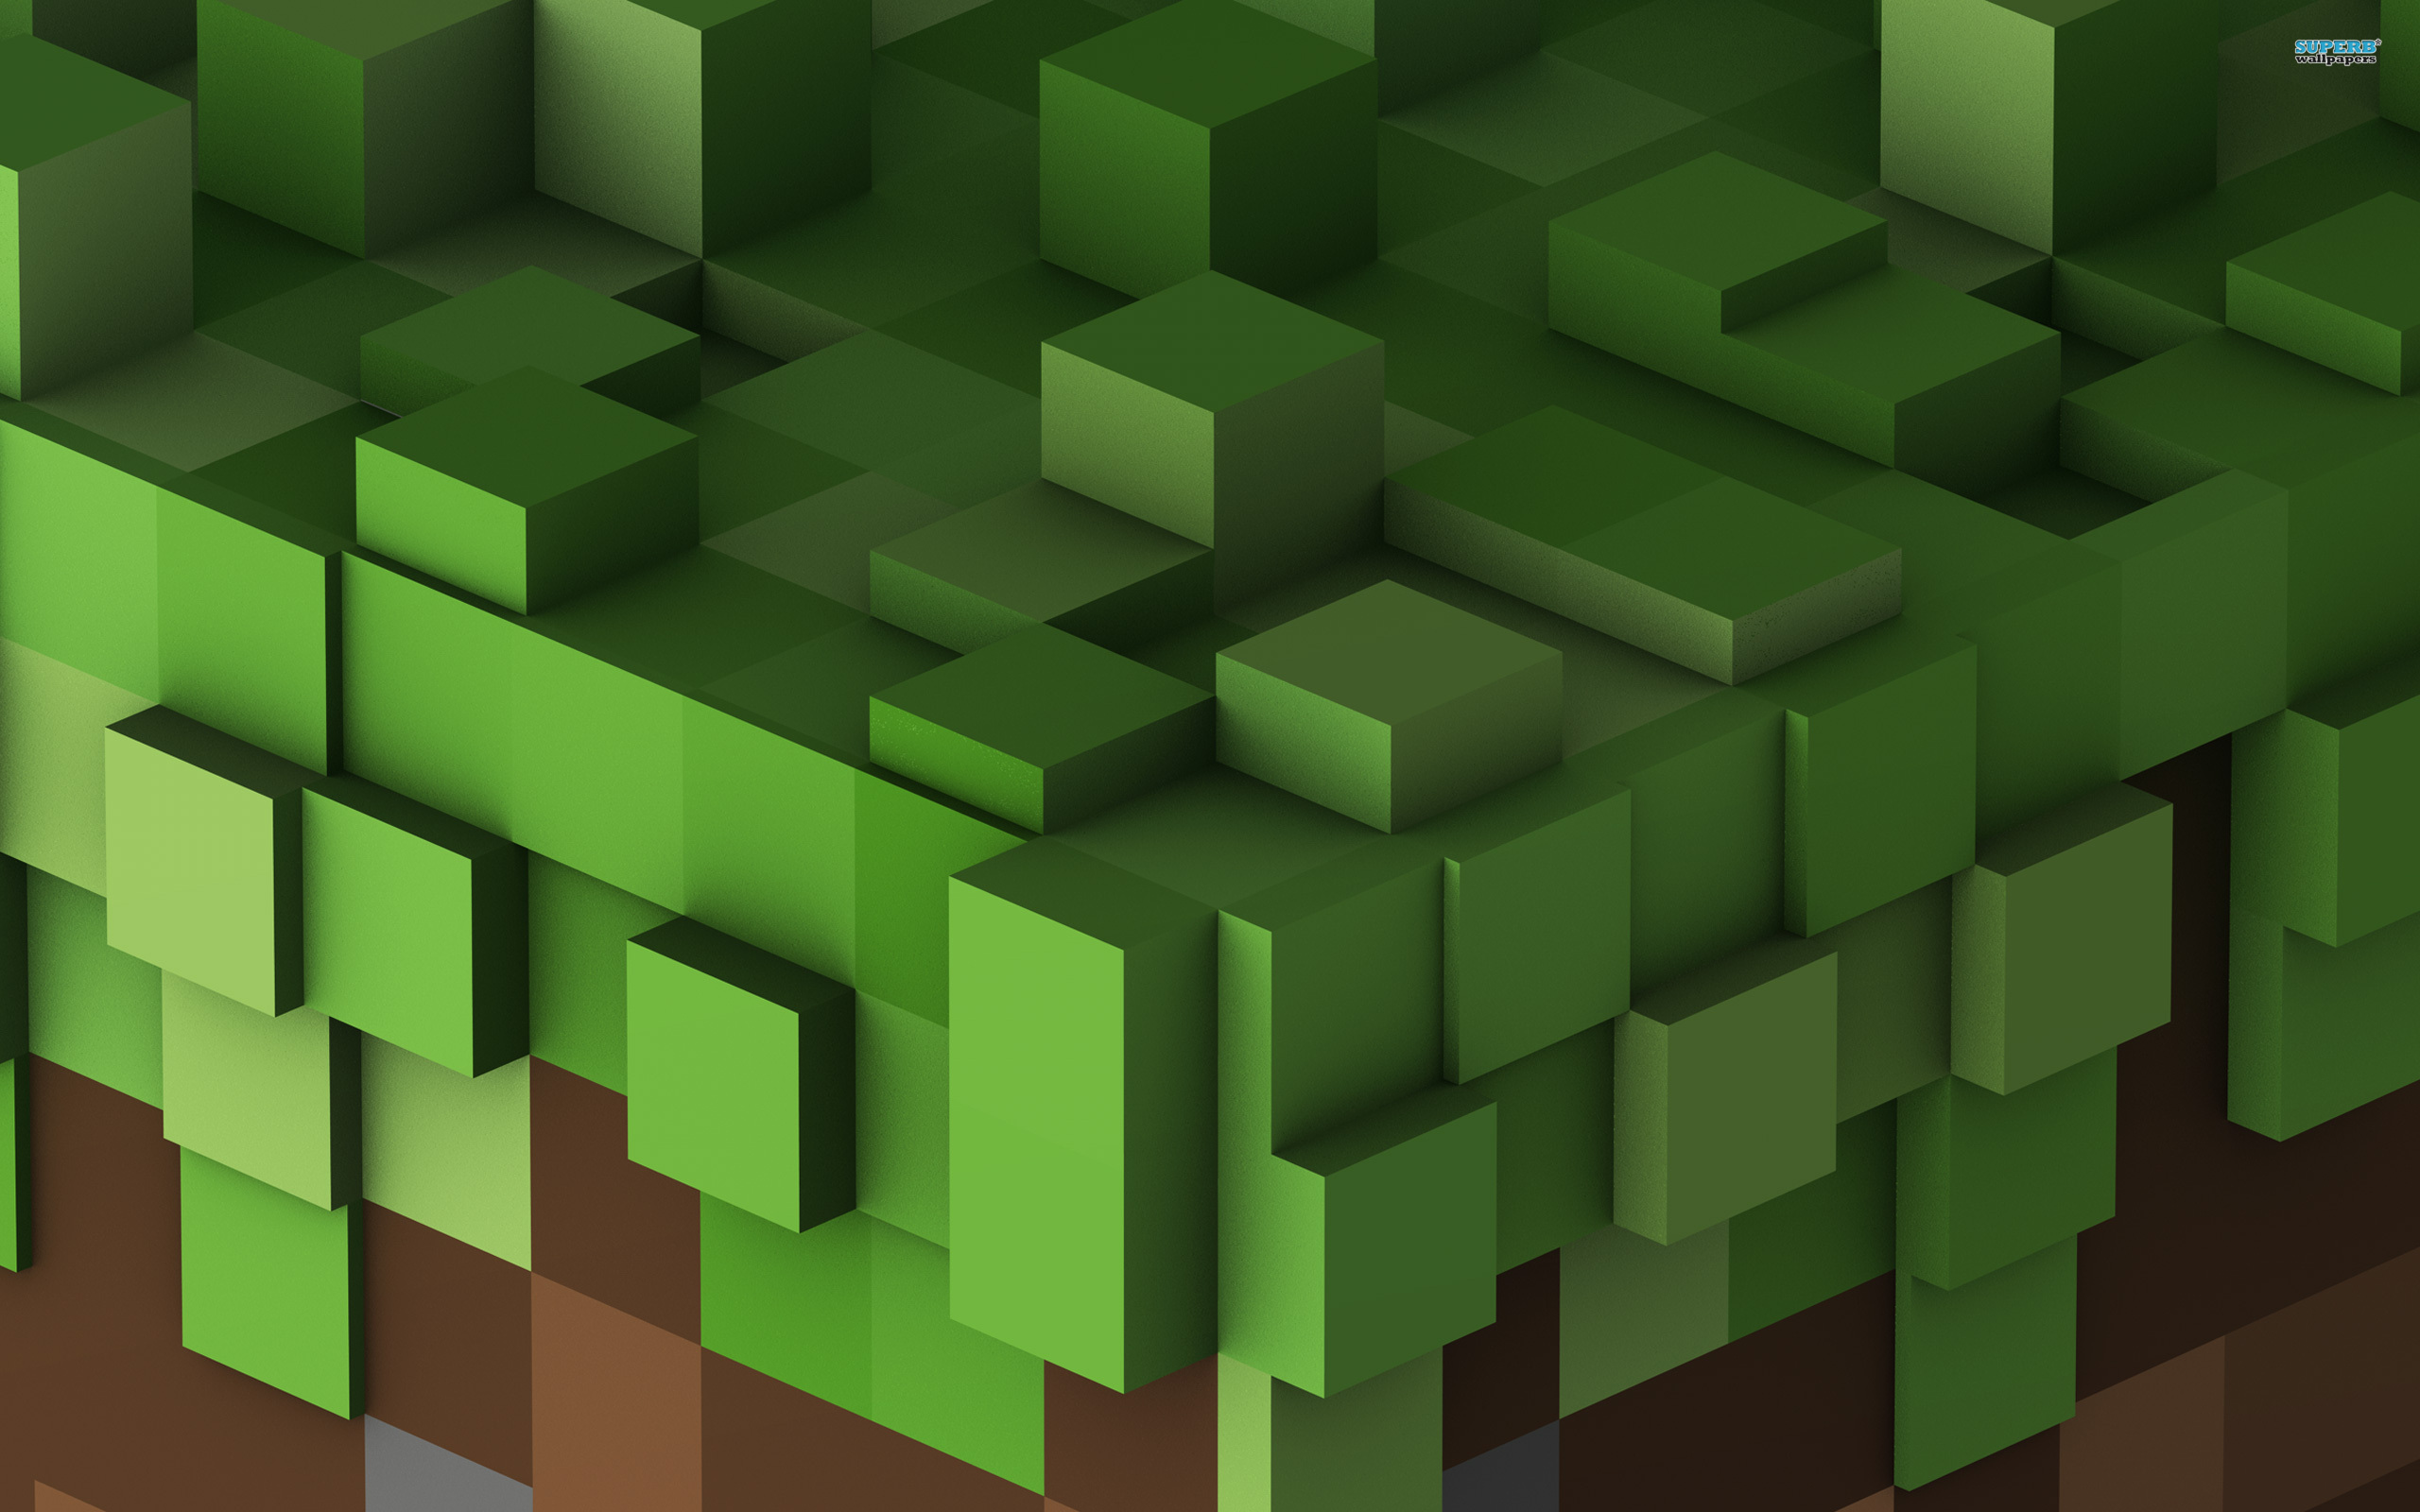 we are giving away 4 HD Minecraft Wallpapers for your desktop 2560x1600